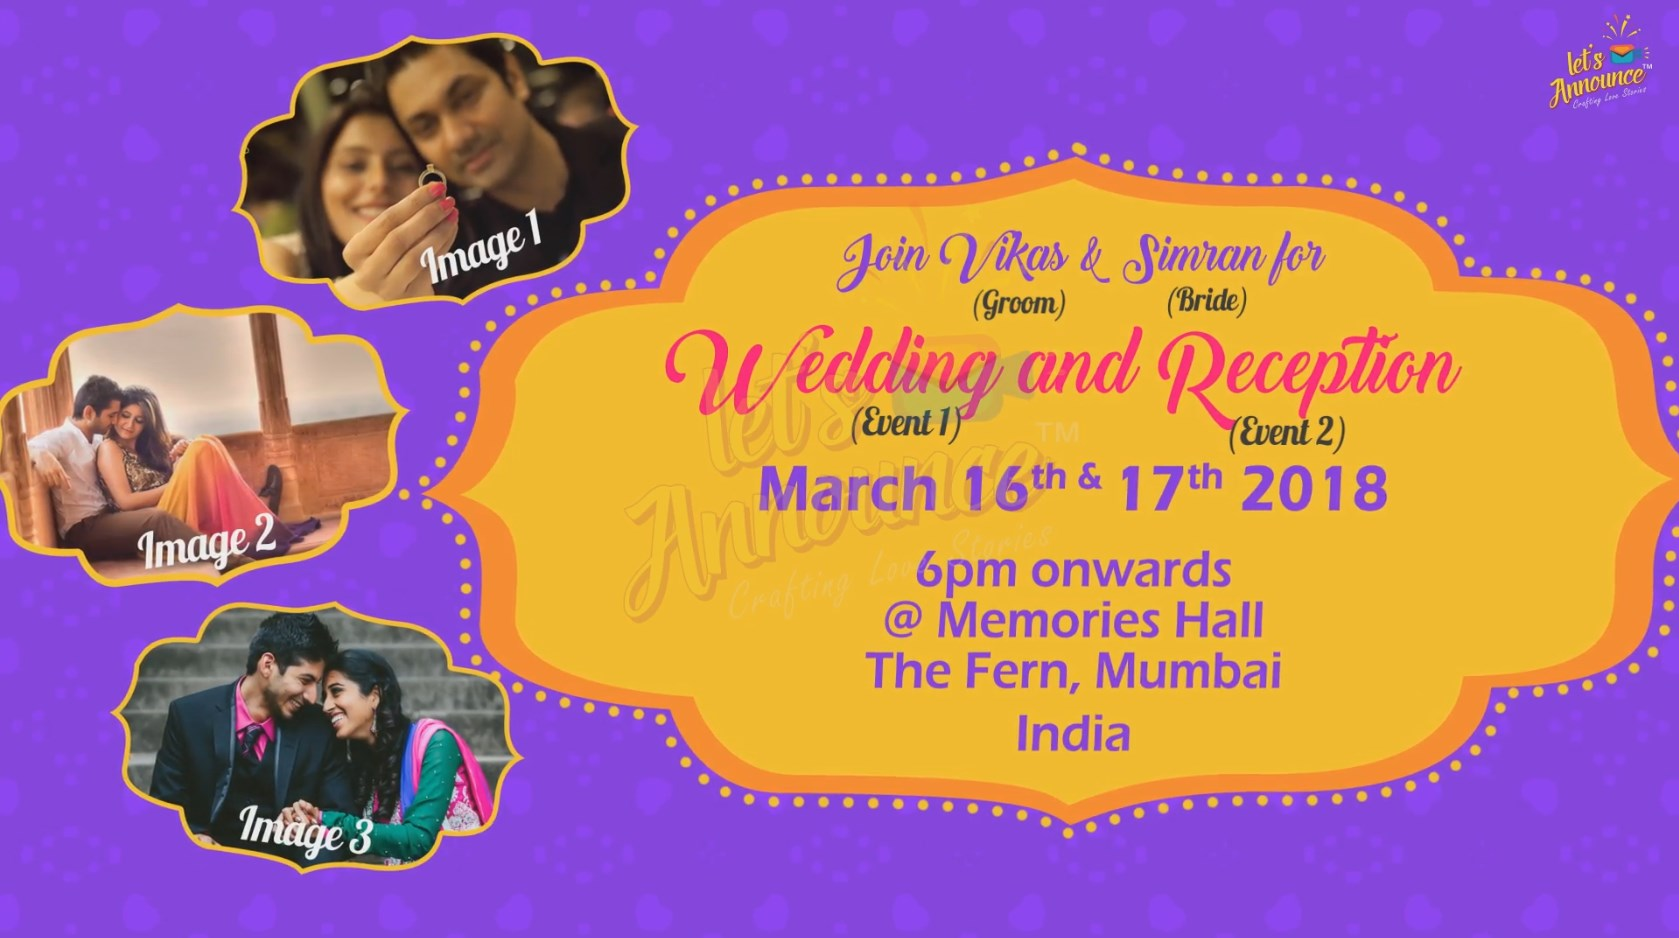 Indian Wedding and Sangeet Invitation-44 sec(USD 85$)